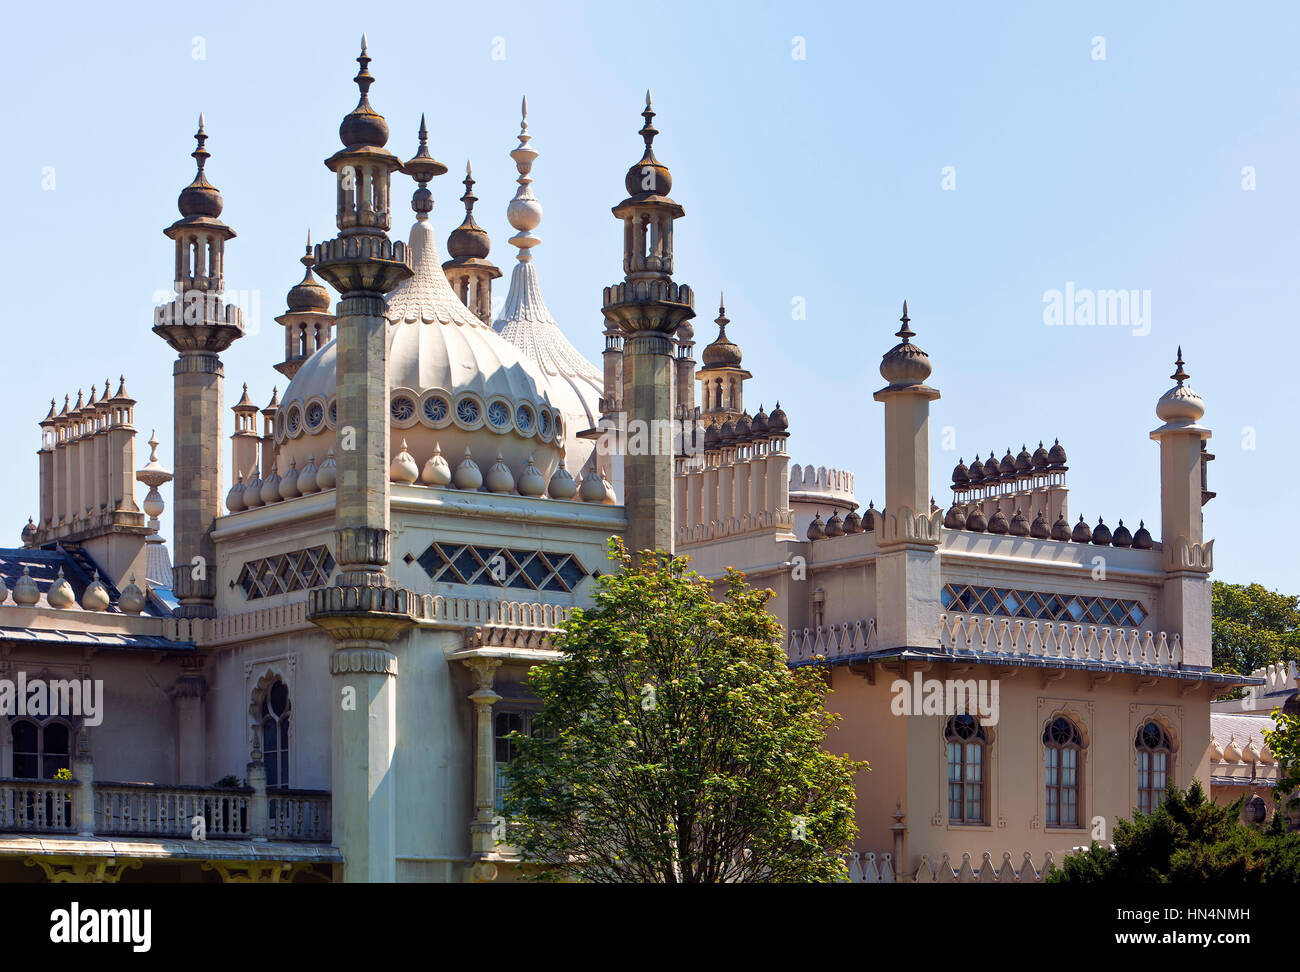 Brighton, East Sussex, UK - May 16, 2014: Domes and spires of the Royal Pavilion at Brighton. Designer John Nash - Stock Image